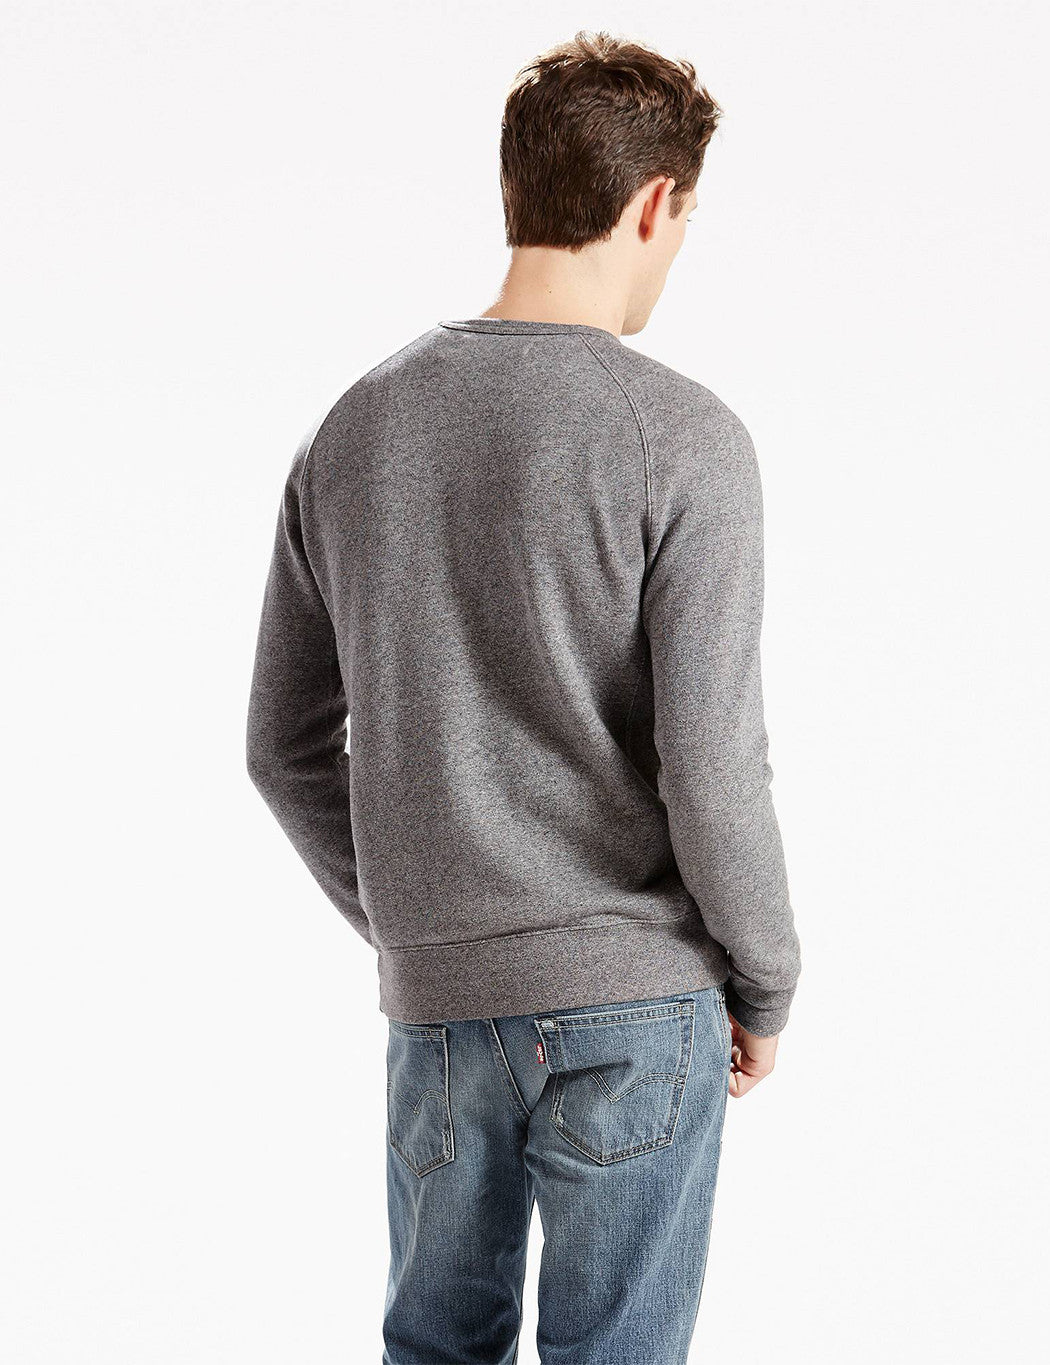 Levis Original Crew Sweatshirt - Grey Heather